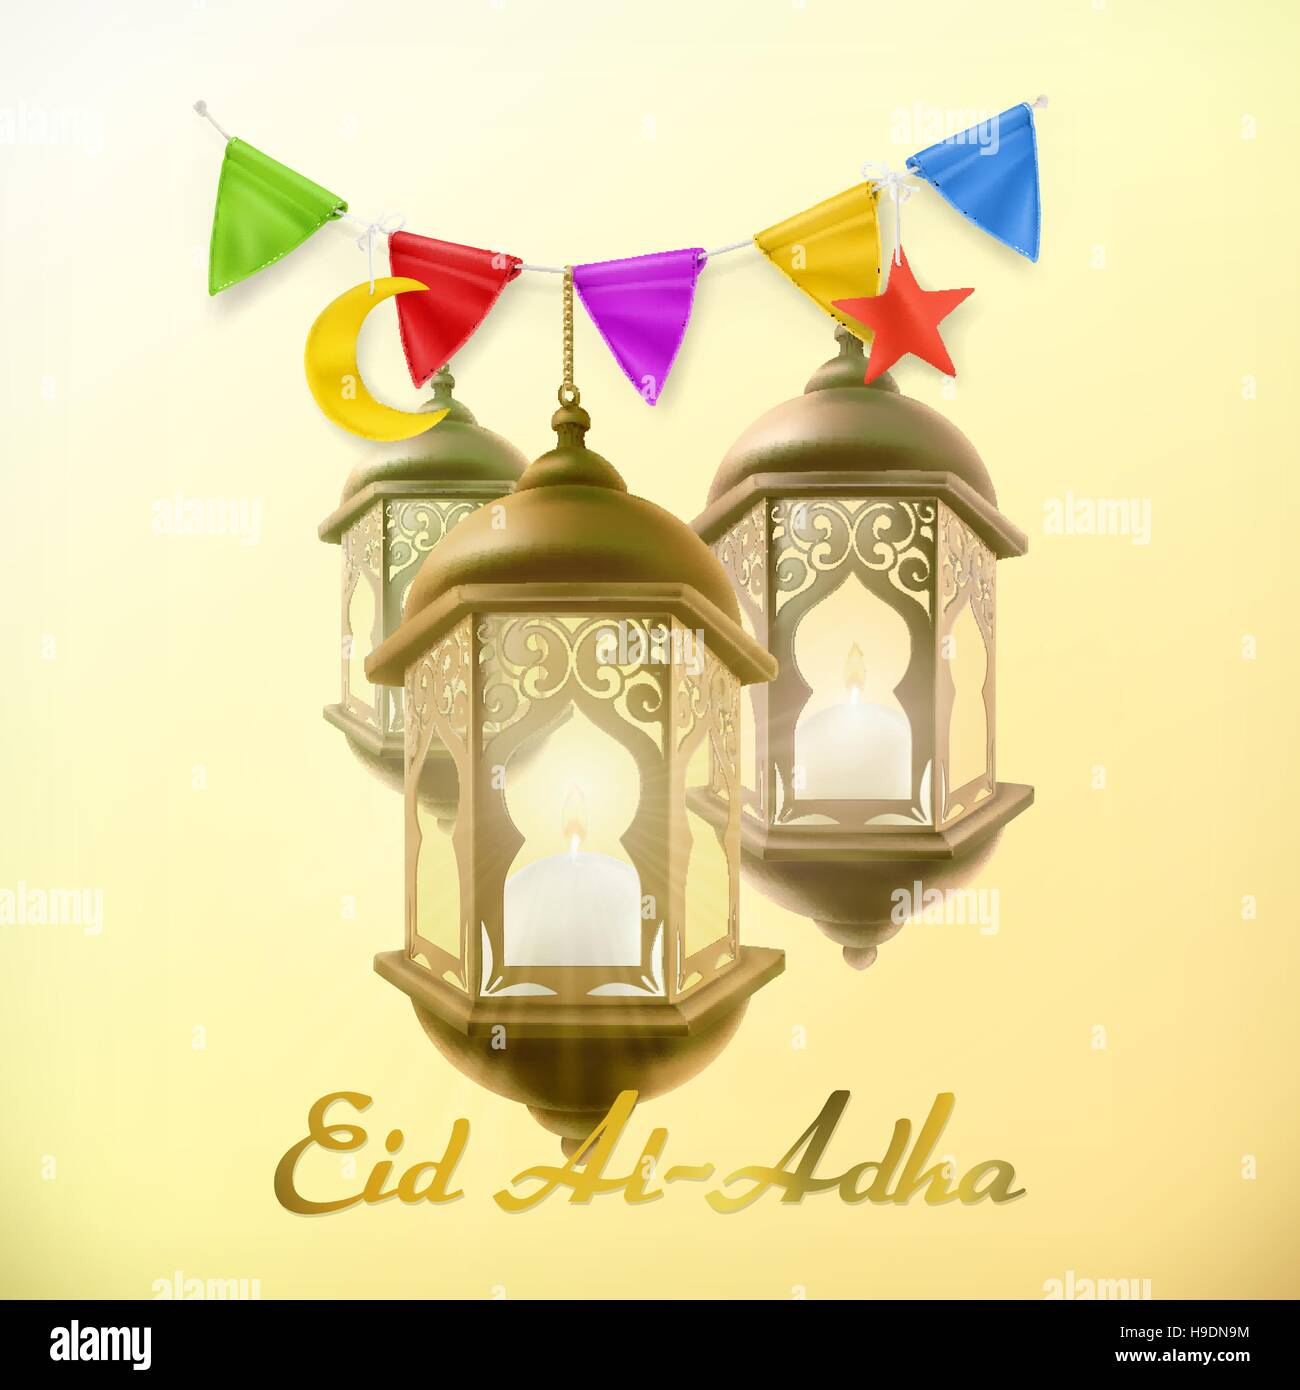 Muslim Holiday Eid Al Adha Greeting Card With Lamp Islamic Culture